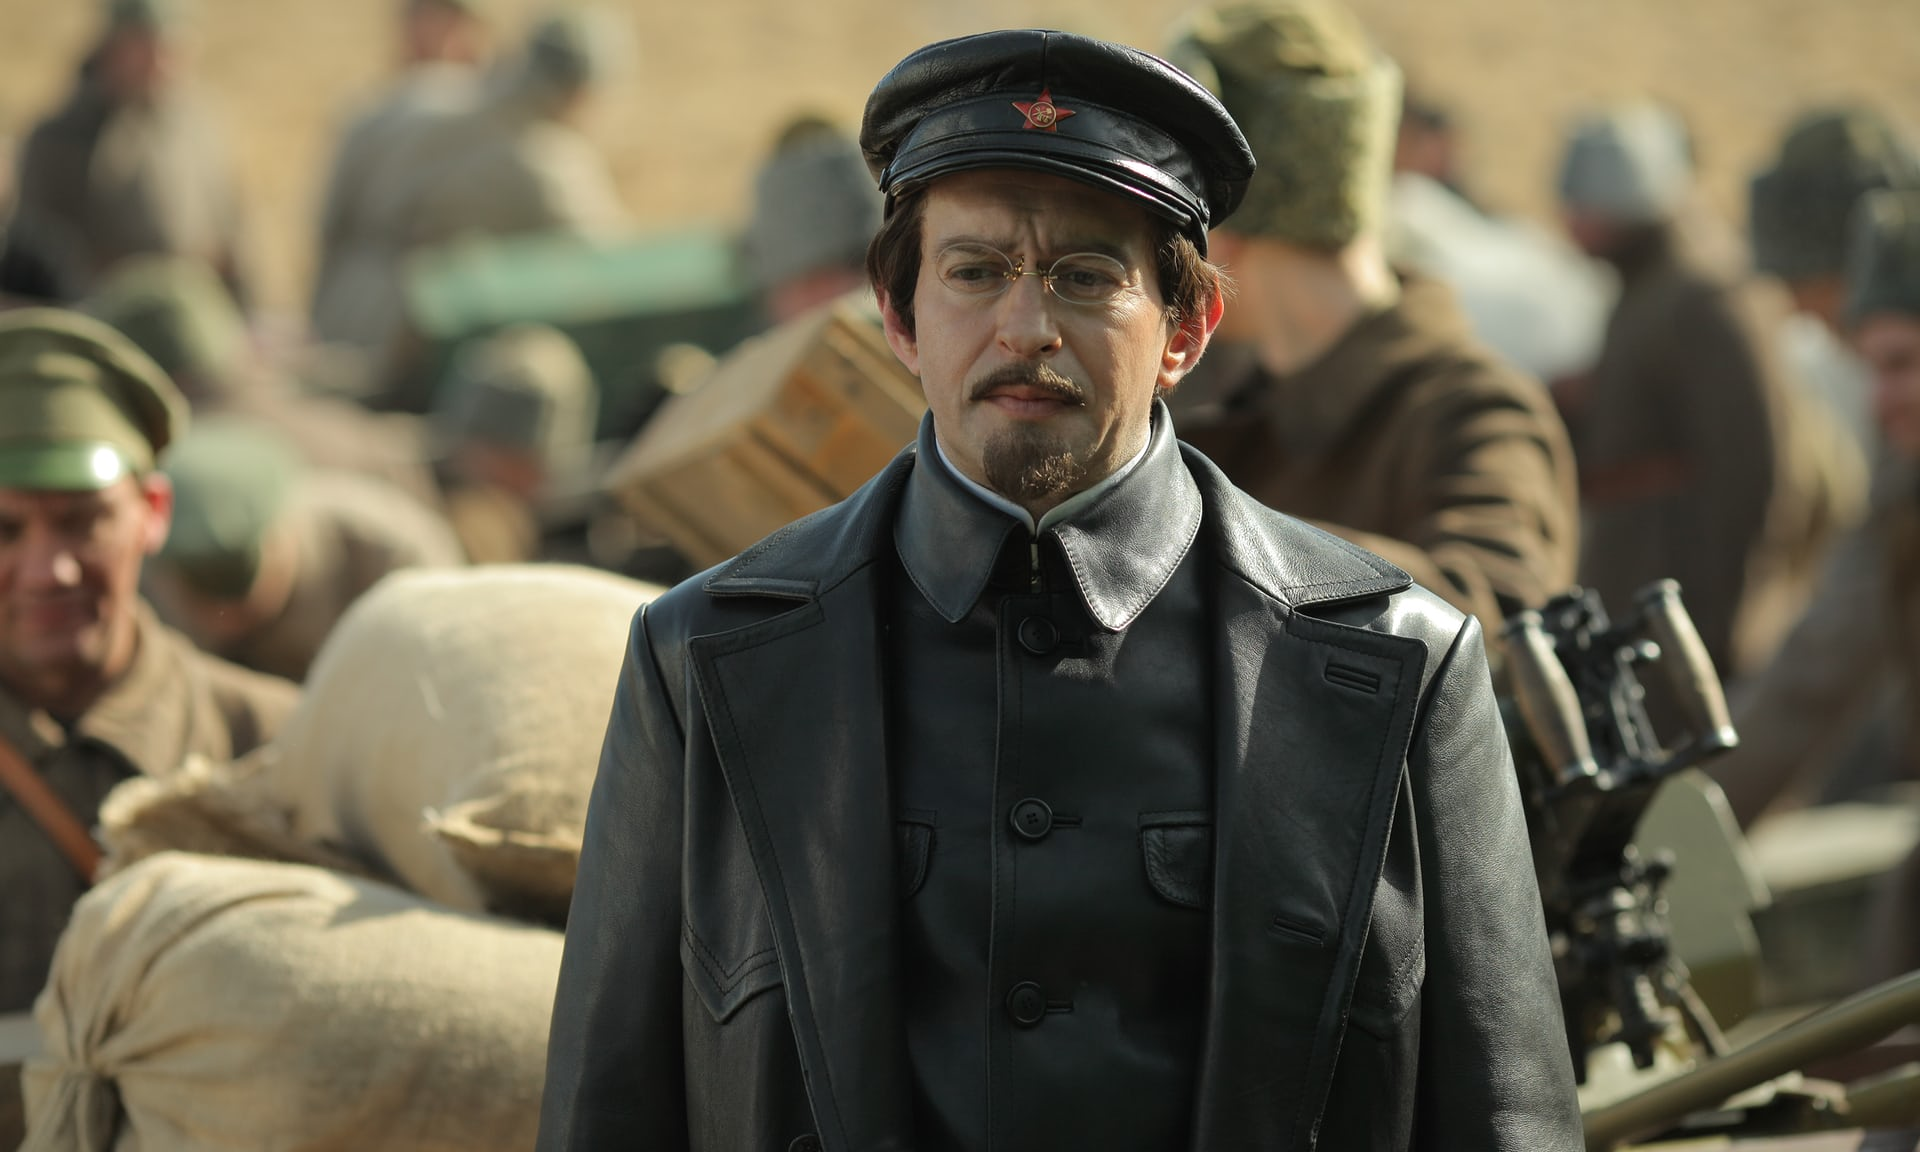 Konstantin Khabensky as Leon Trotsky in Russia's 2017 Channel One 'historical' drama 'Trotsky'